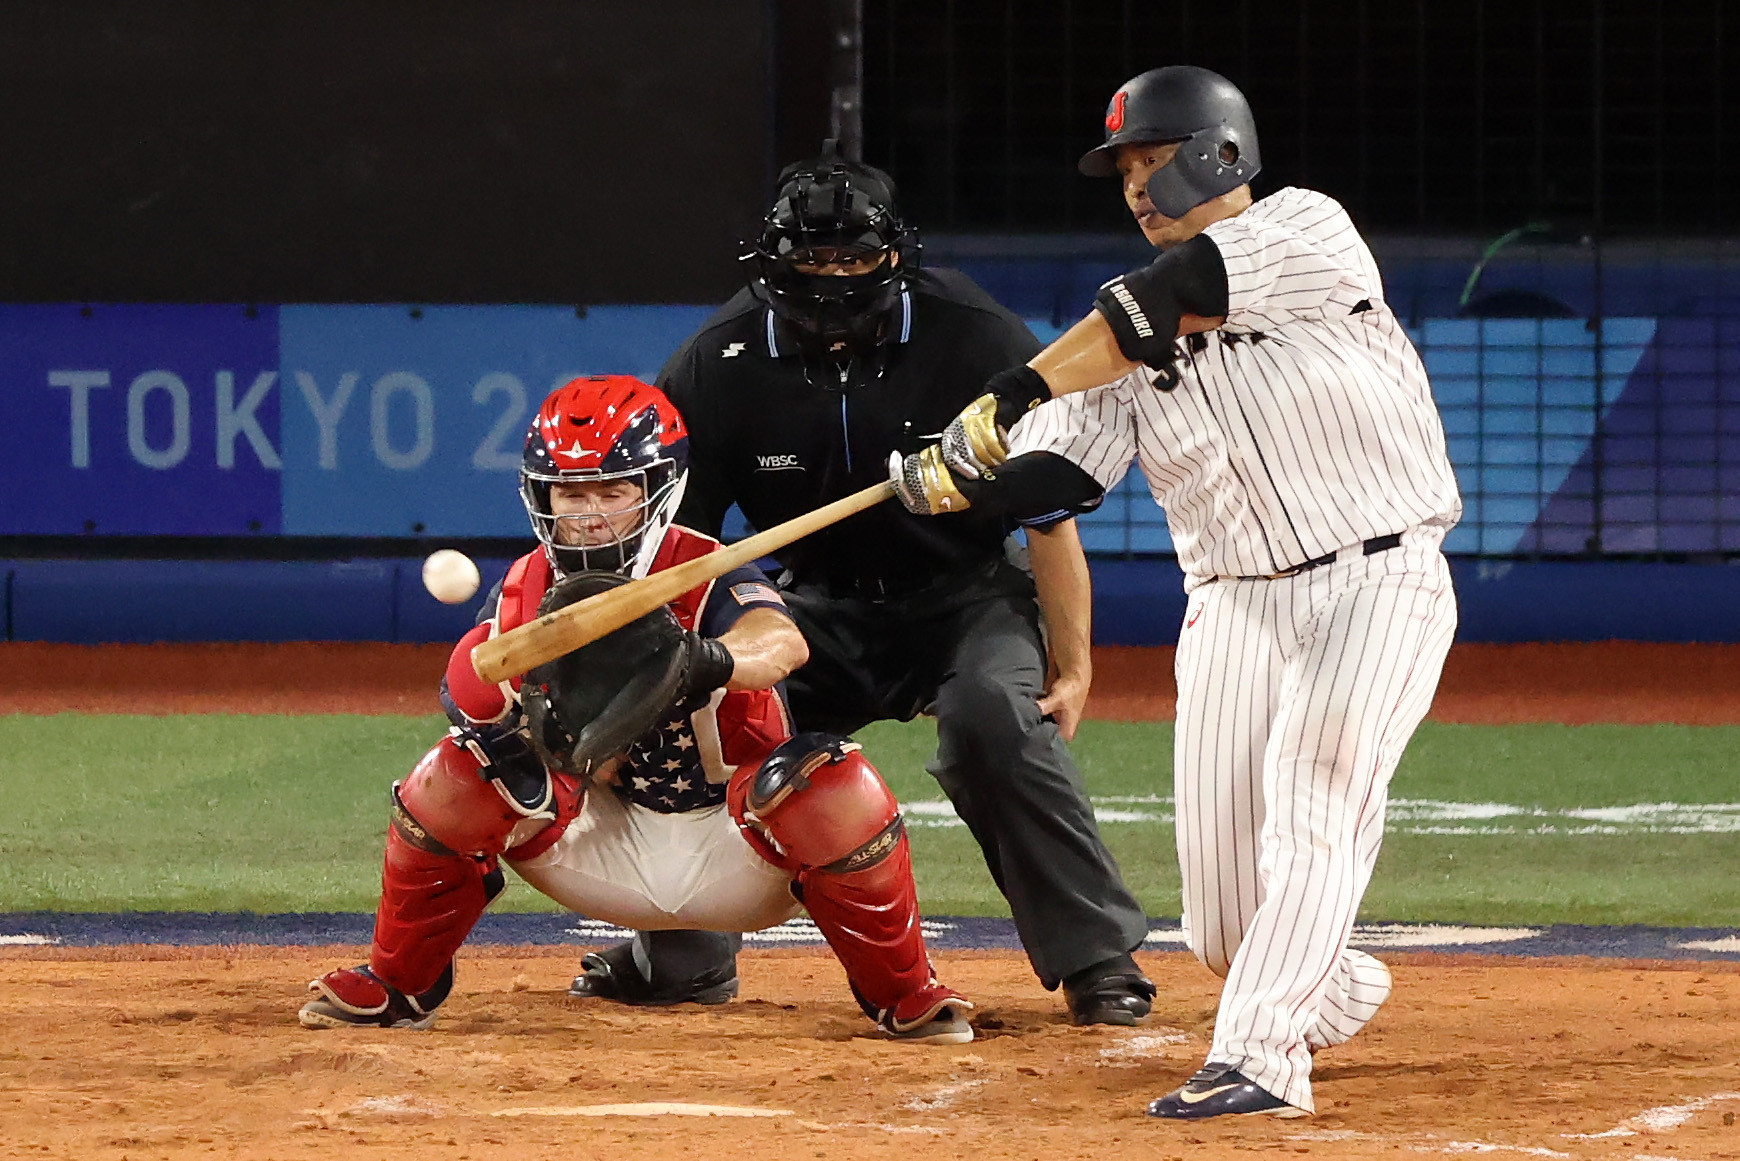 """Fraccari insists baseball and softball can be """"permanent fixture on the Olympic programme"""""""